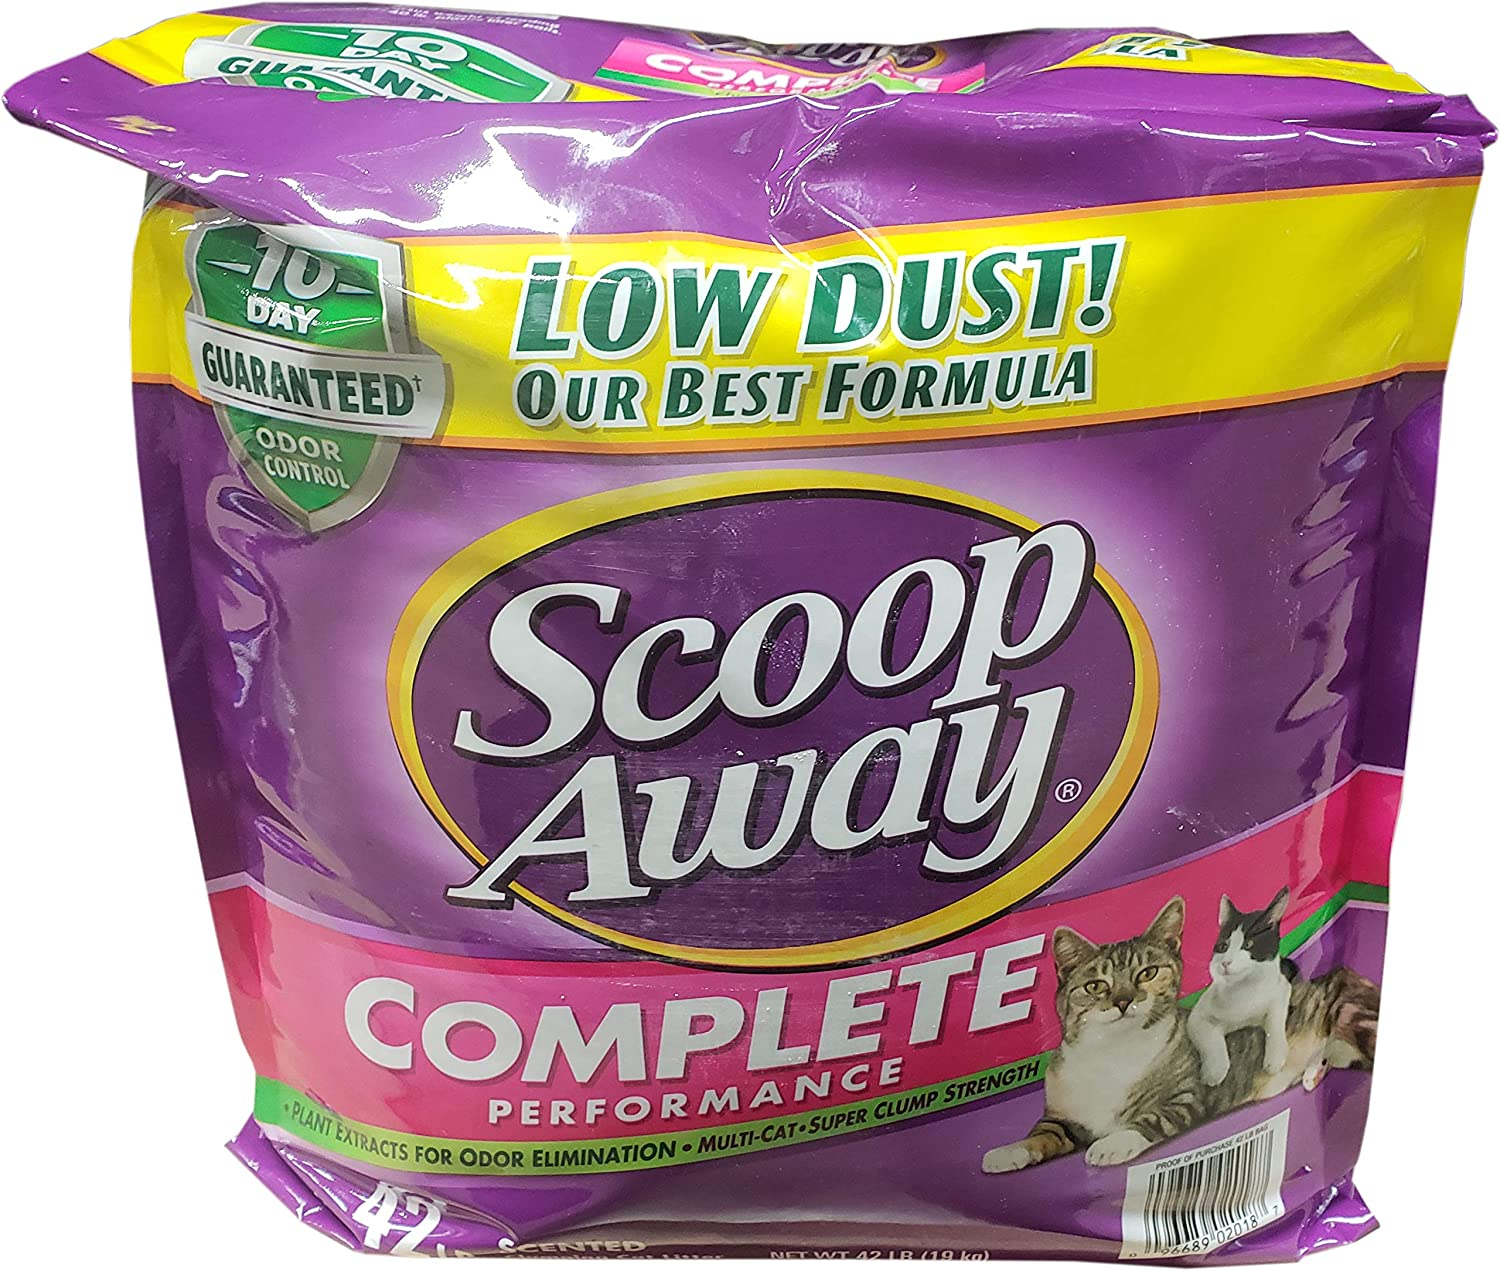 Scoop Away Complete Performance Scented Cat Litter 42 Pounds